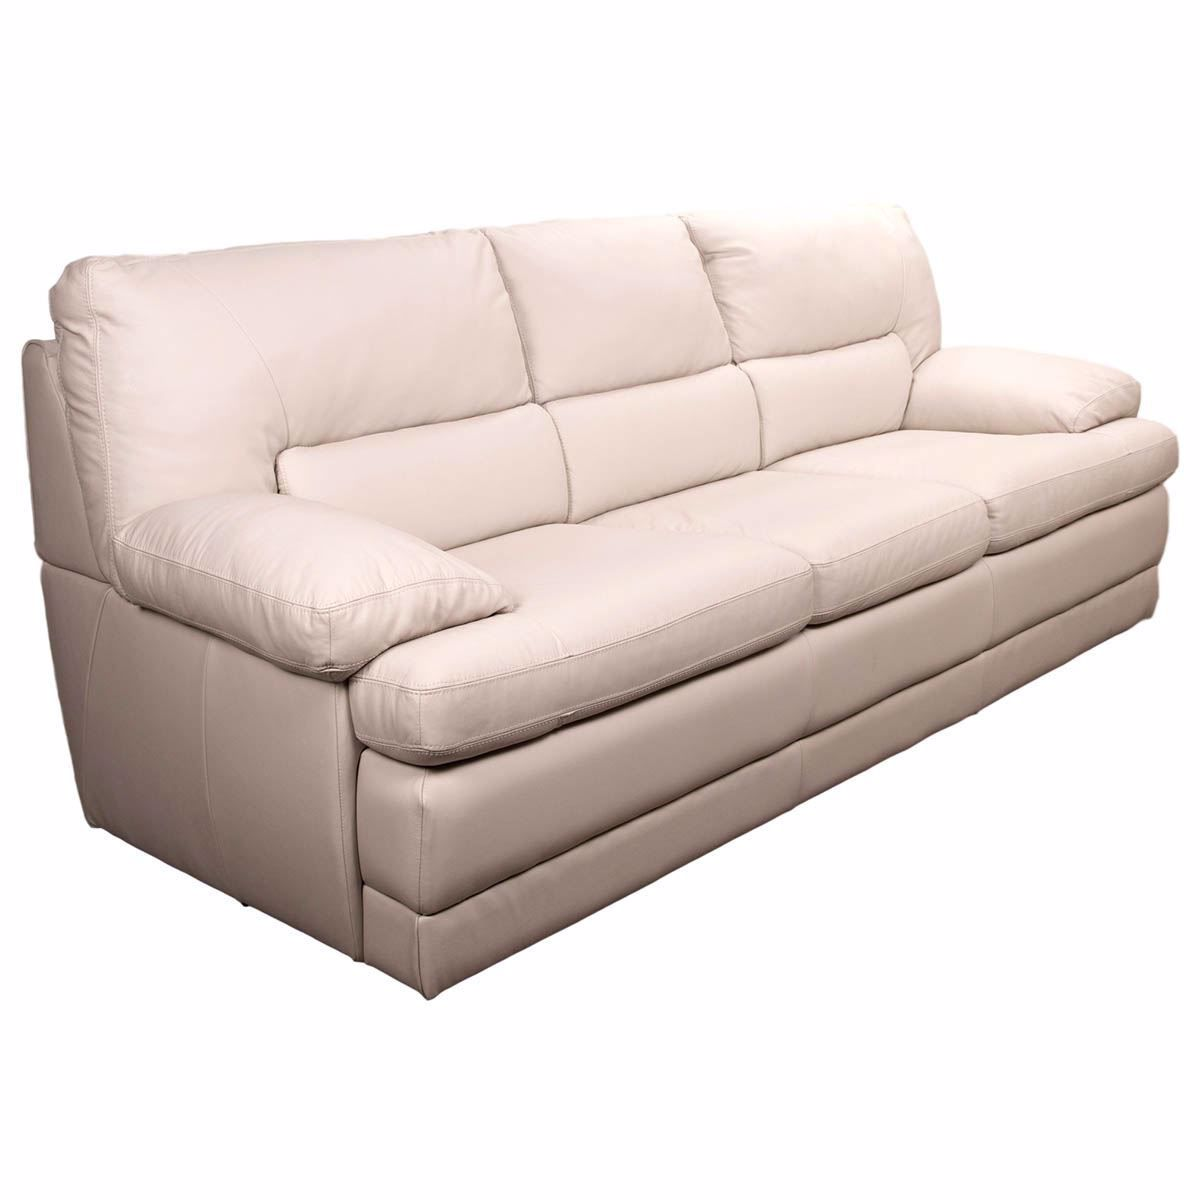 leather sofas in tulsa ok furniture sofa bed northbrook ii bisque by palliser